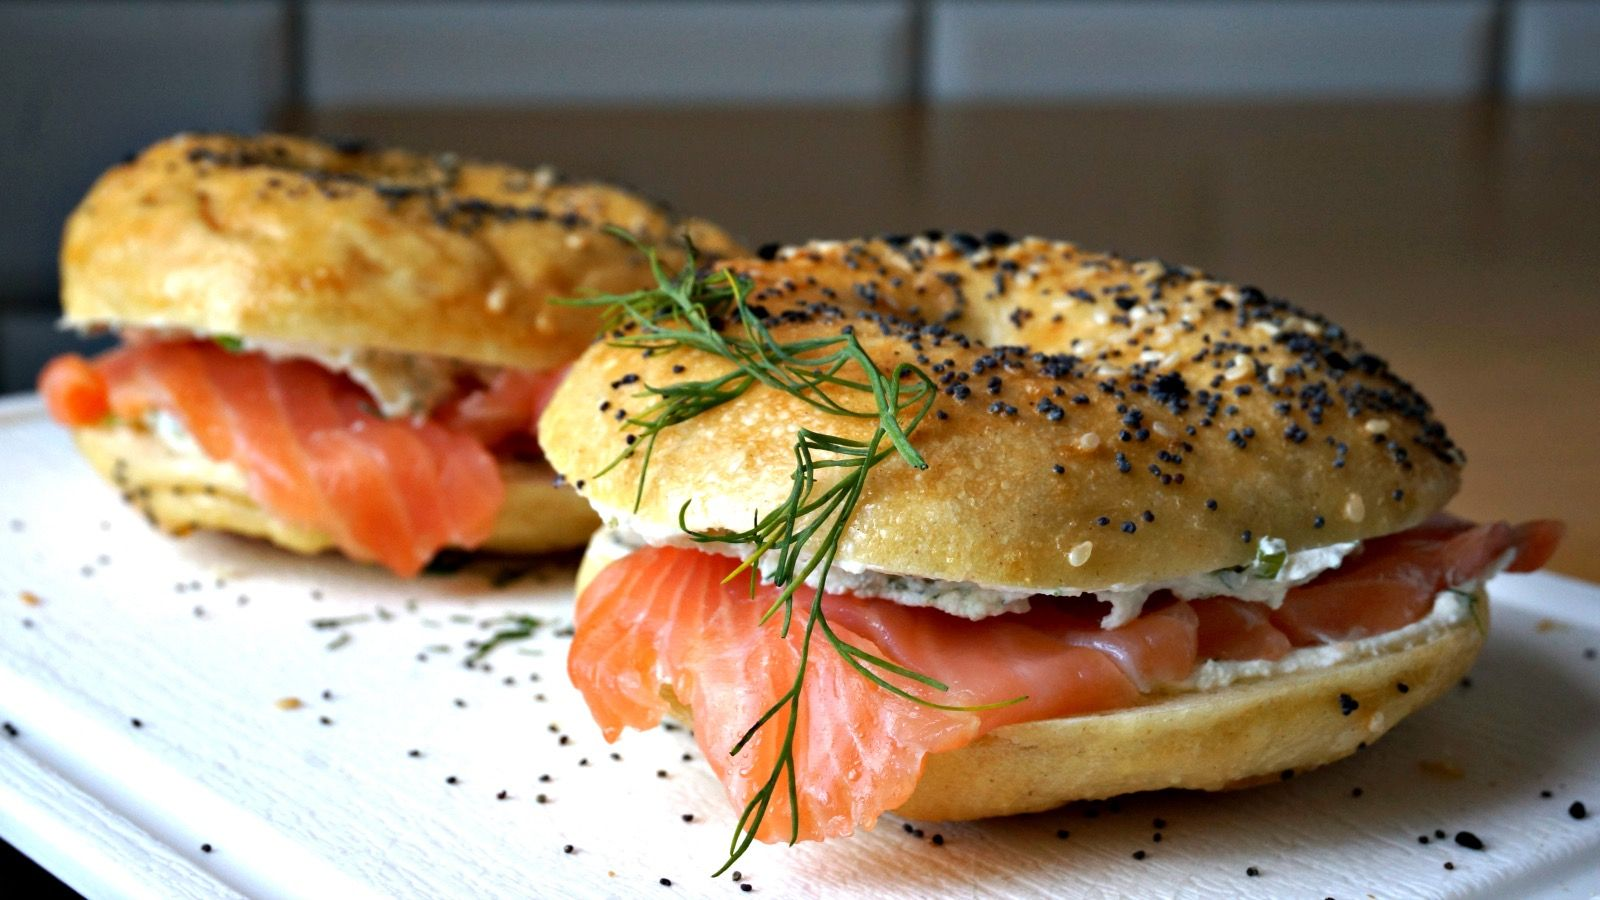 An appetizing classic: bagels and lox.